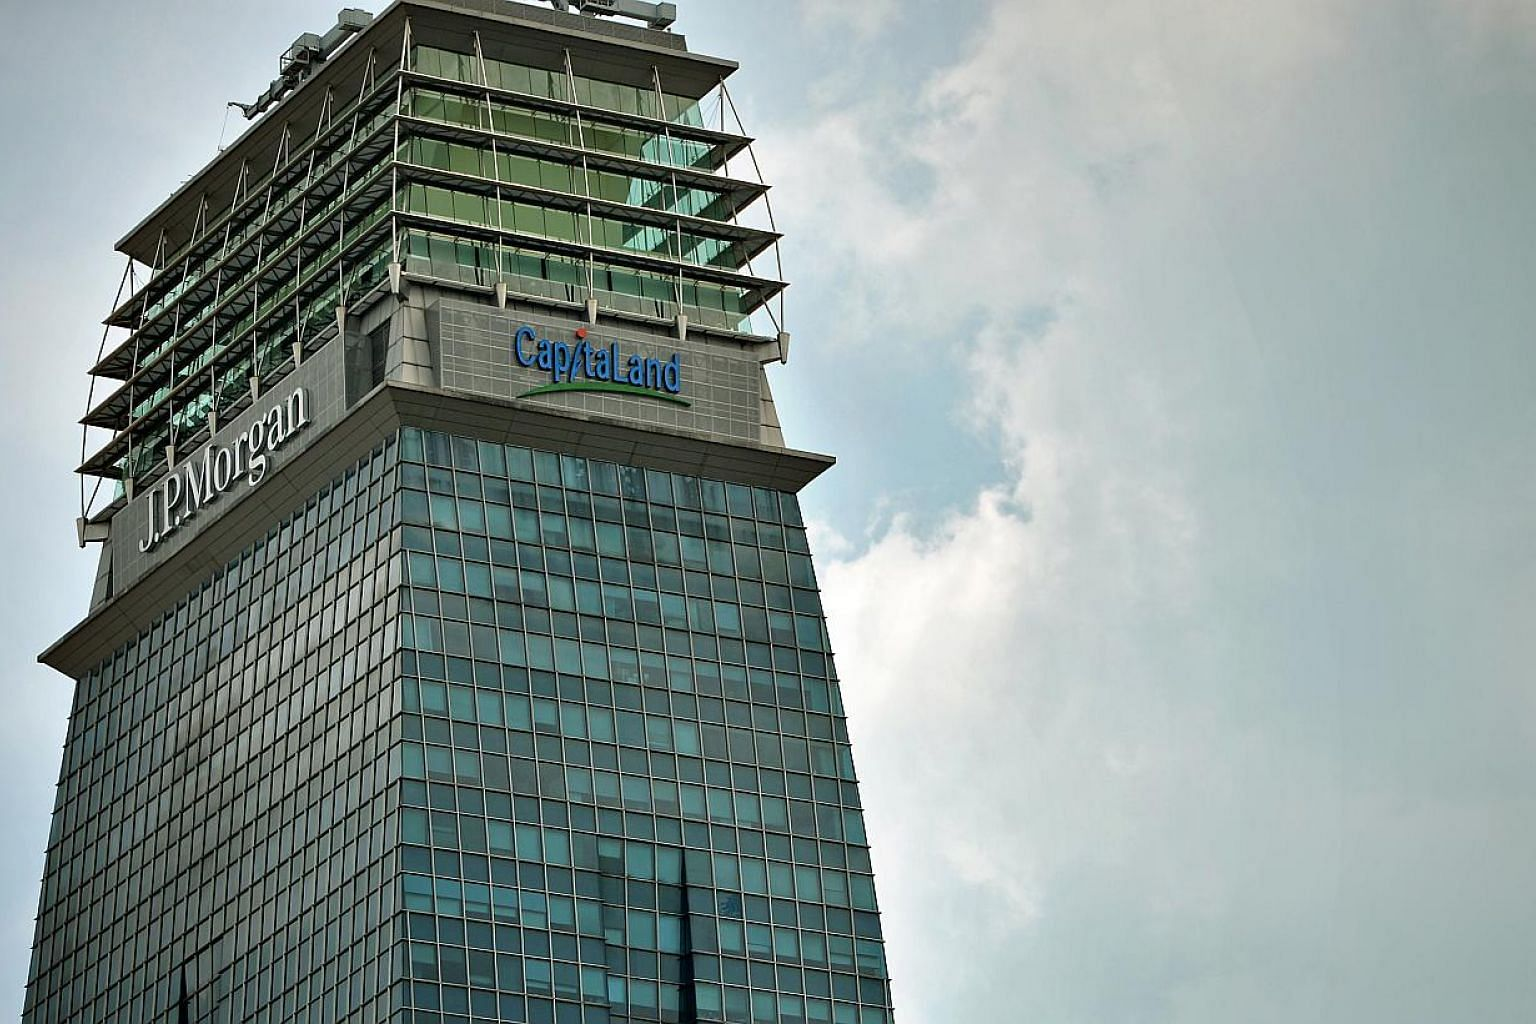 Capitaland building, together with the JP Morgan logo, located in the Central Business District. -- PHOTO: ST FILE